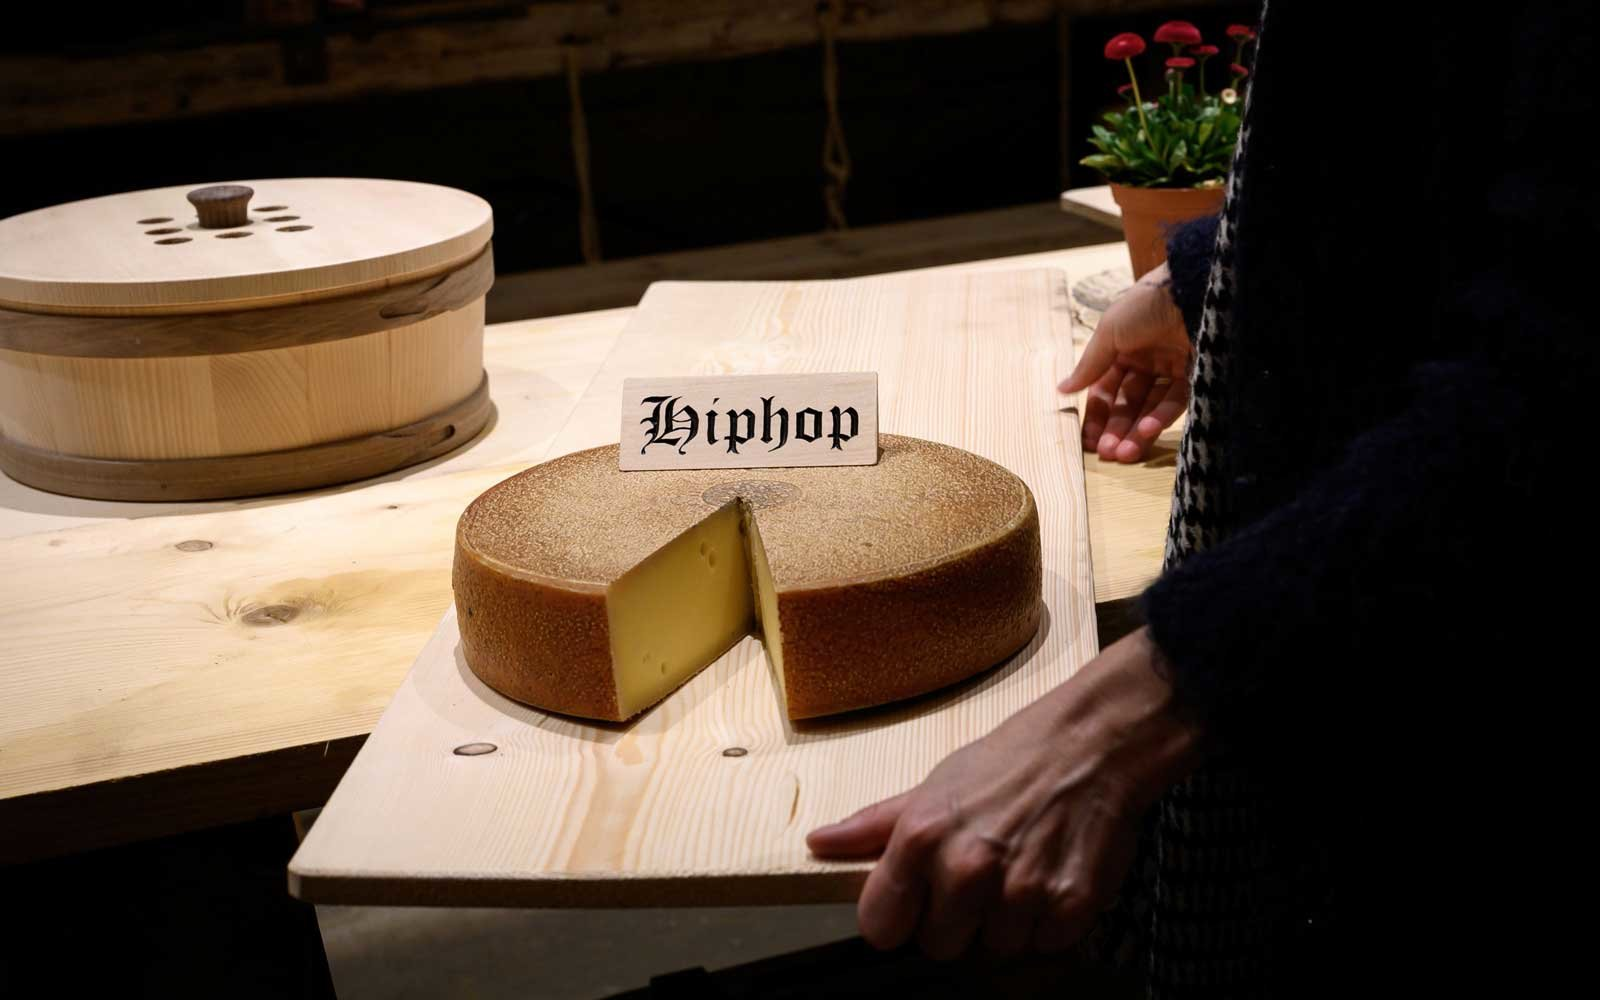 hiphop cheese